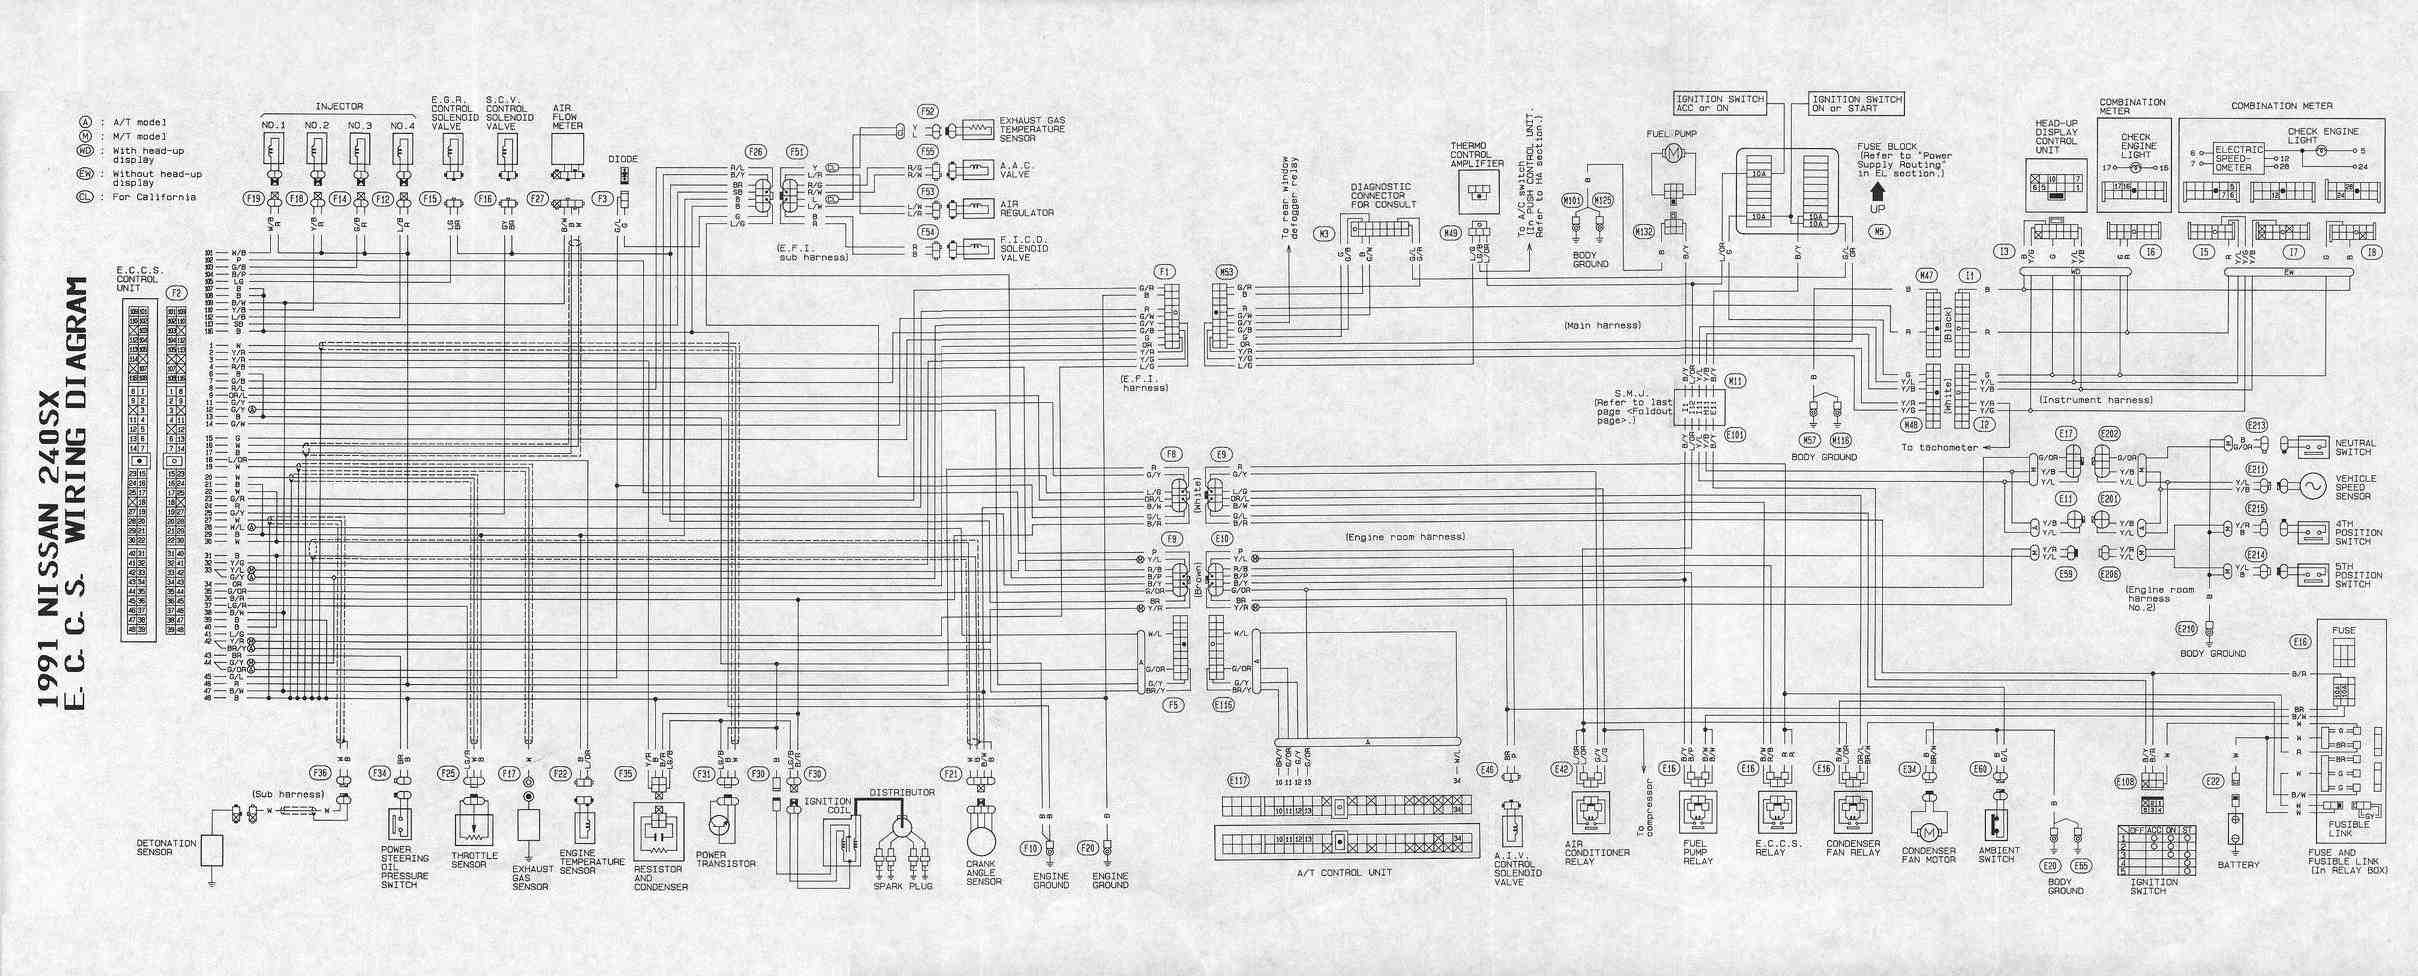 nissan leaf wiring diagram nissan image wiring diagram wiring diagrams nissan forum on nissan leaf wiring diagram